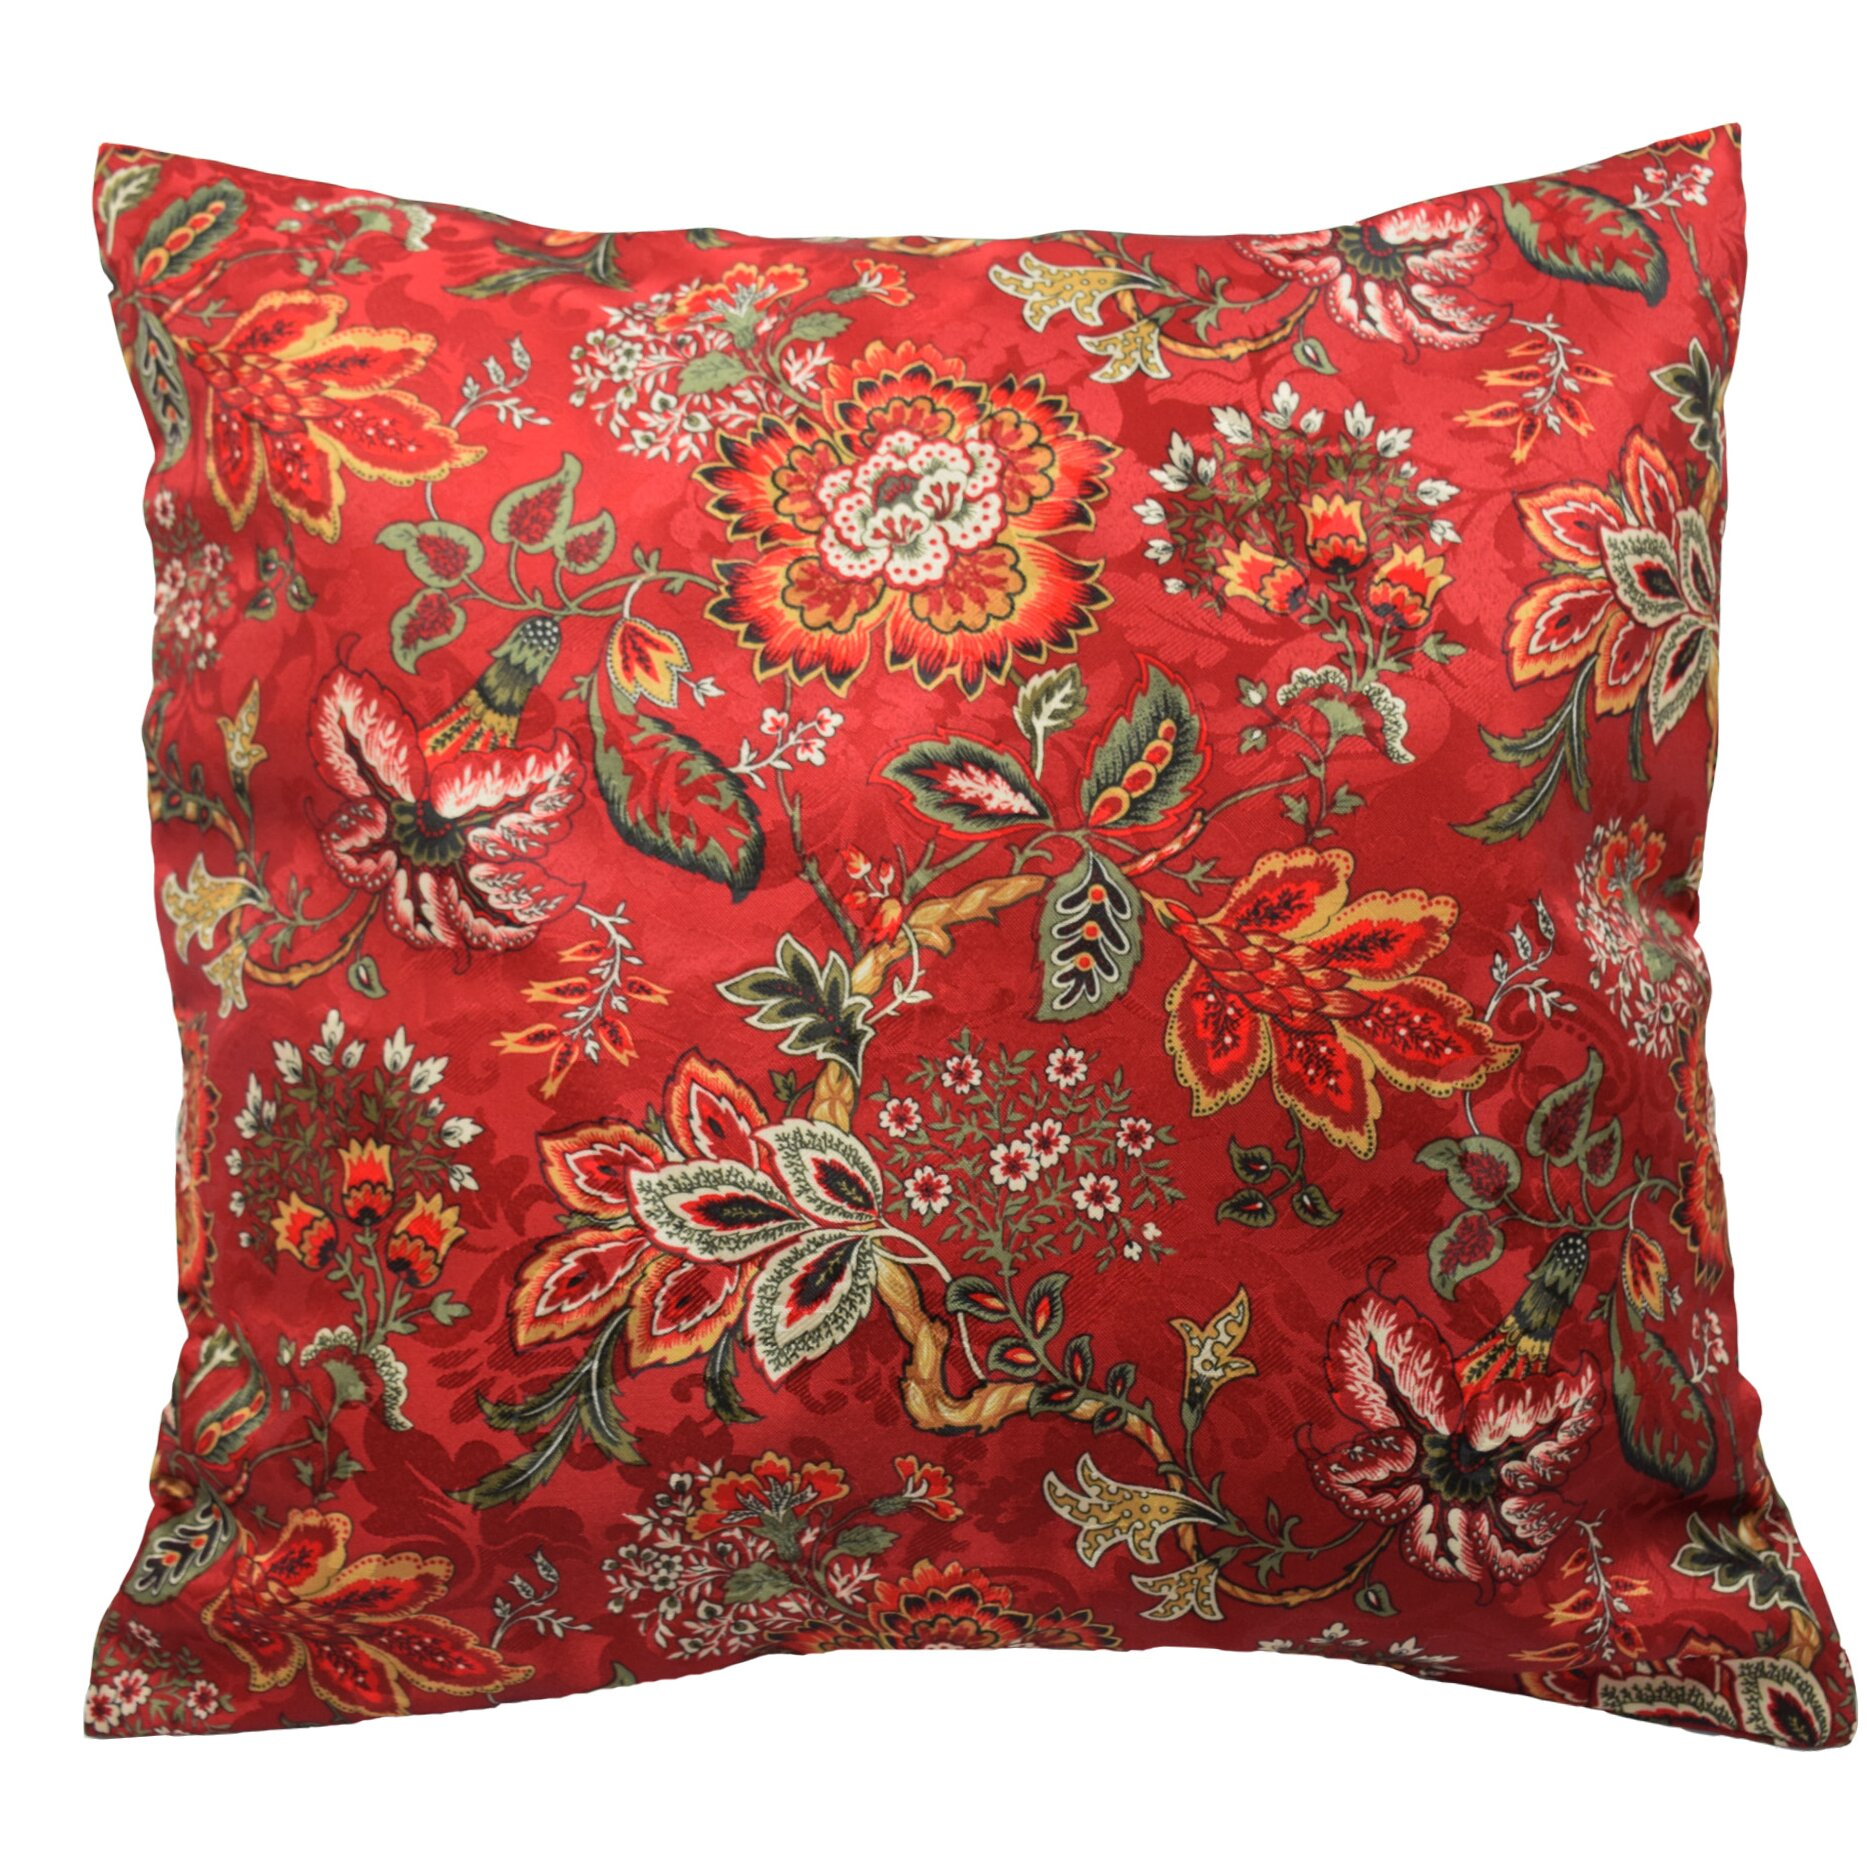 Traditions by waverly navarra floral decorative throw for Decor pillows